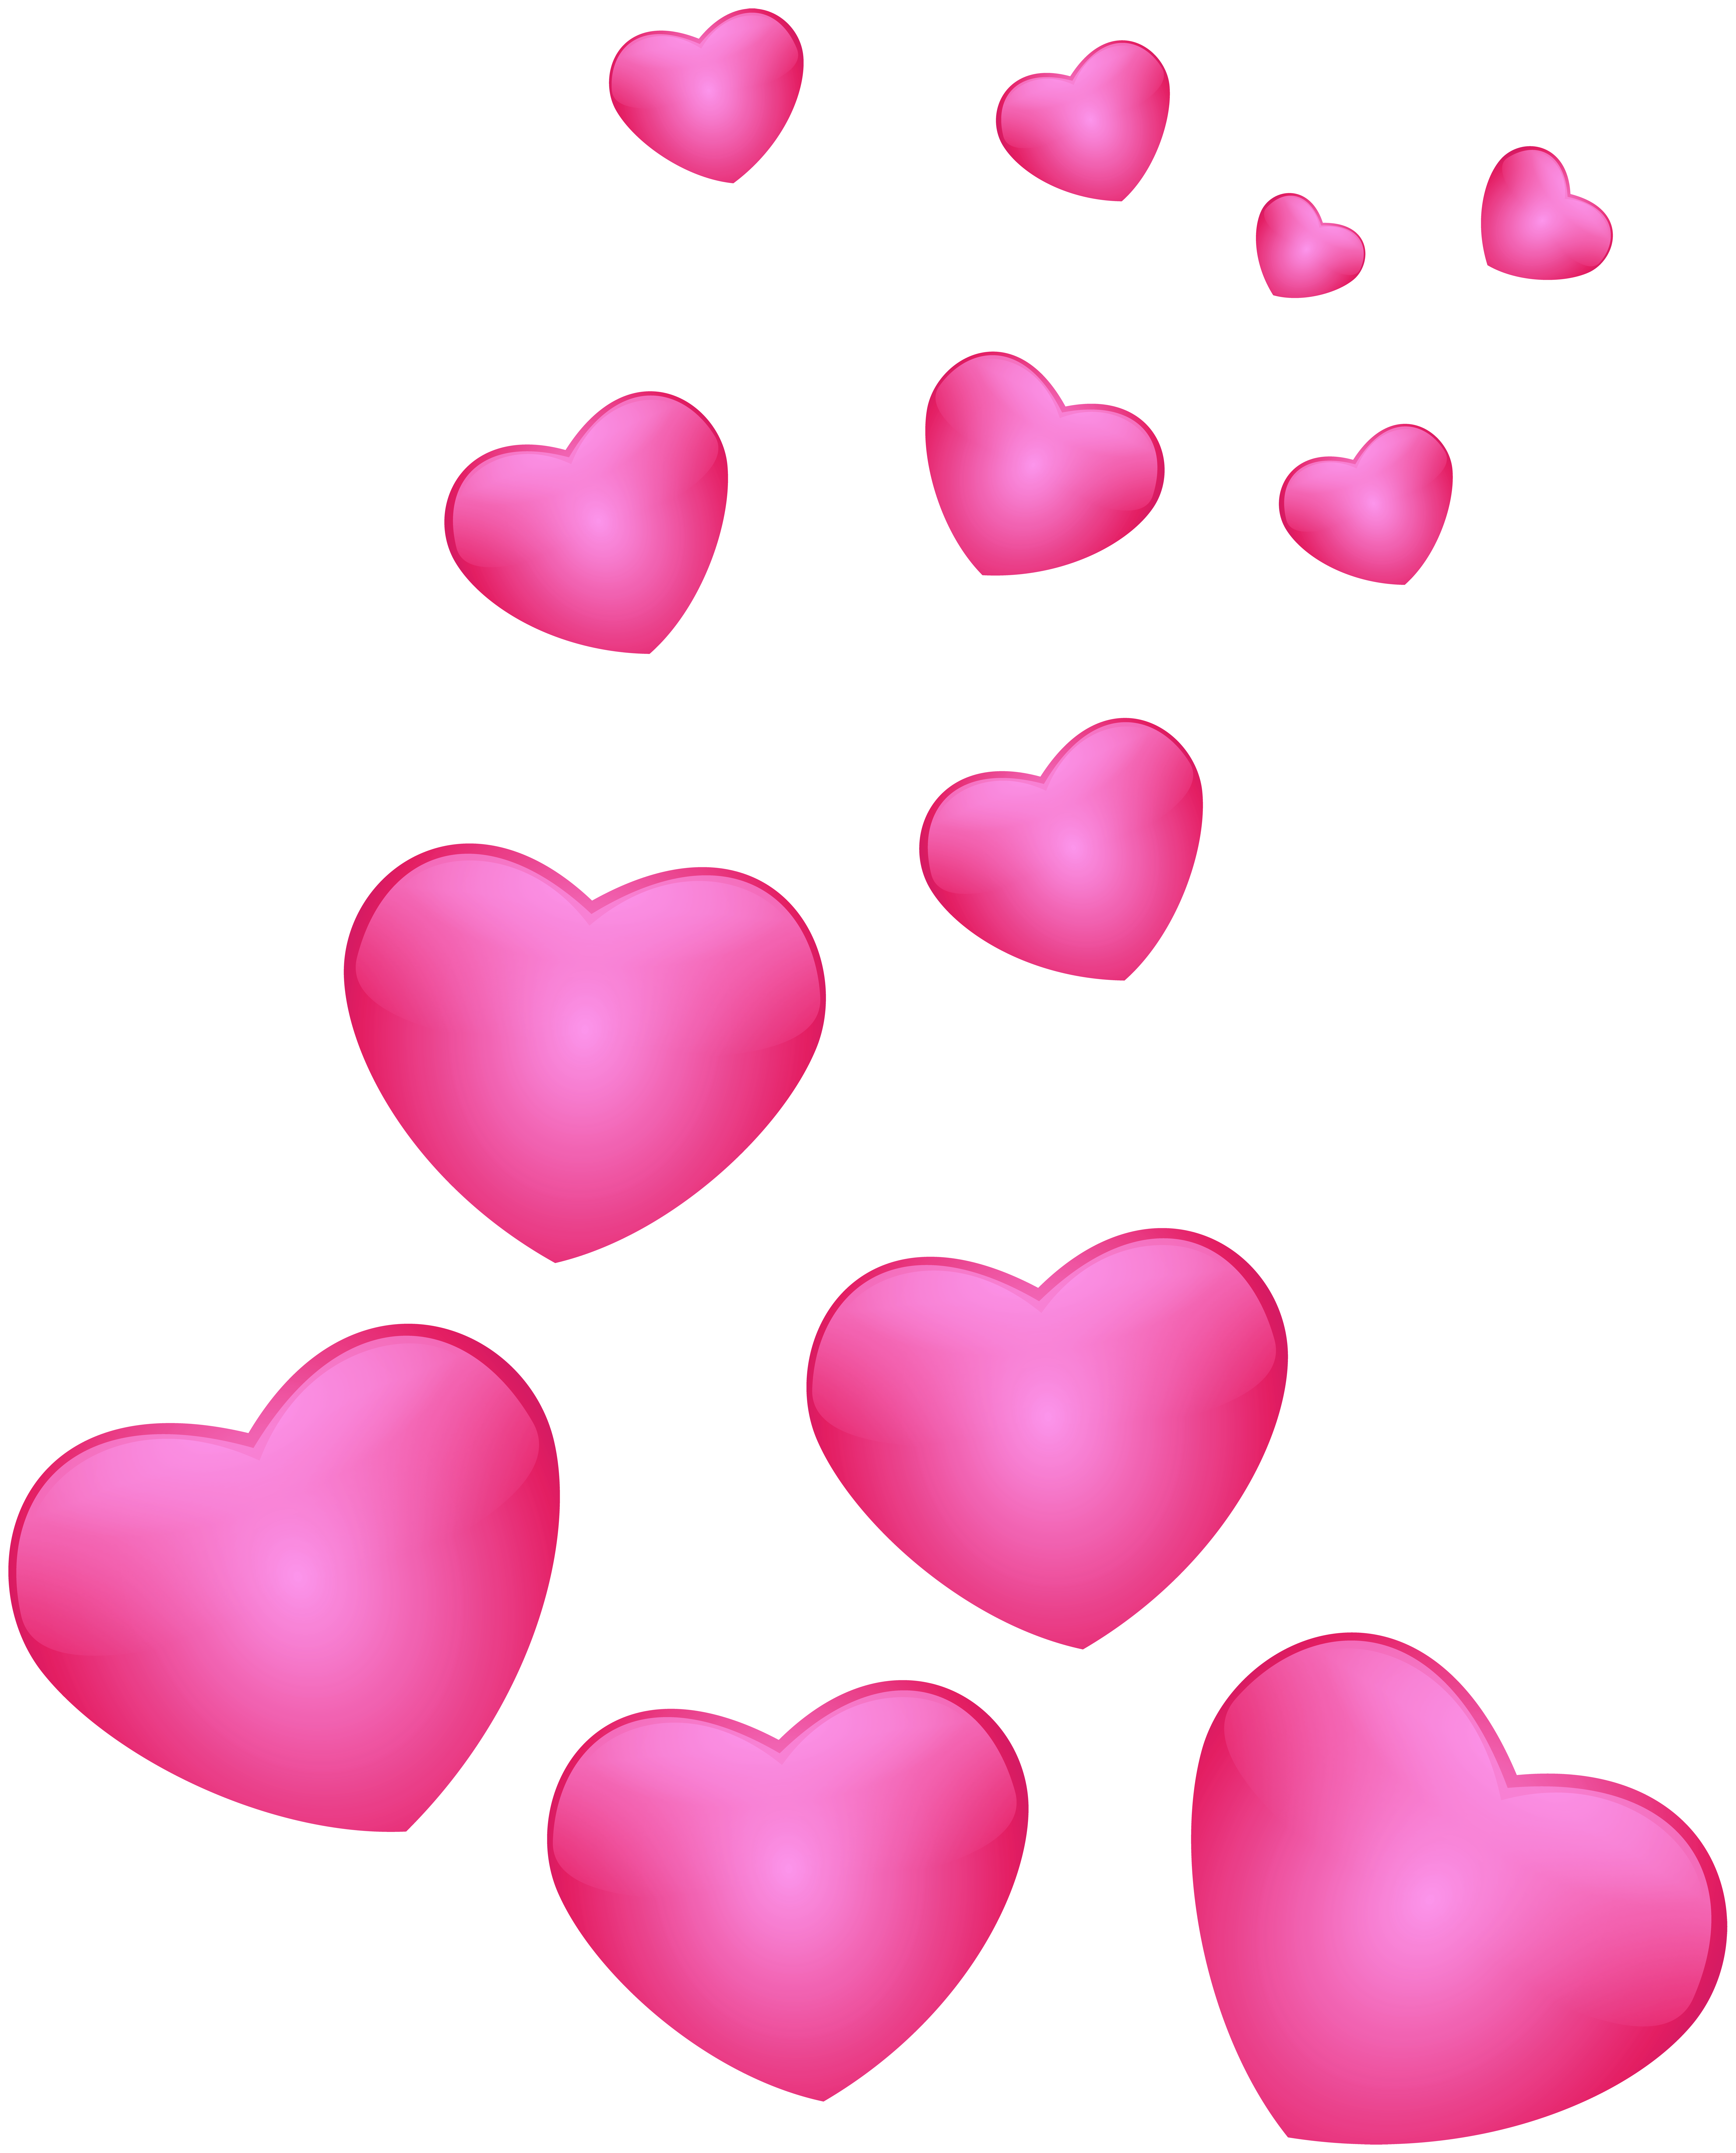 Hearts Pink Png Clip Art Image Gallery Yopriceville High Quality Images And Transparent Png Free Clipart Free Clip Art Clip Art Art Images